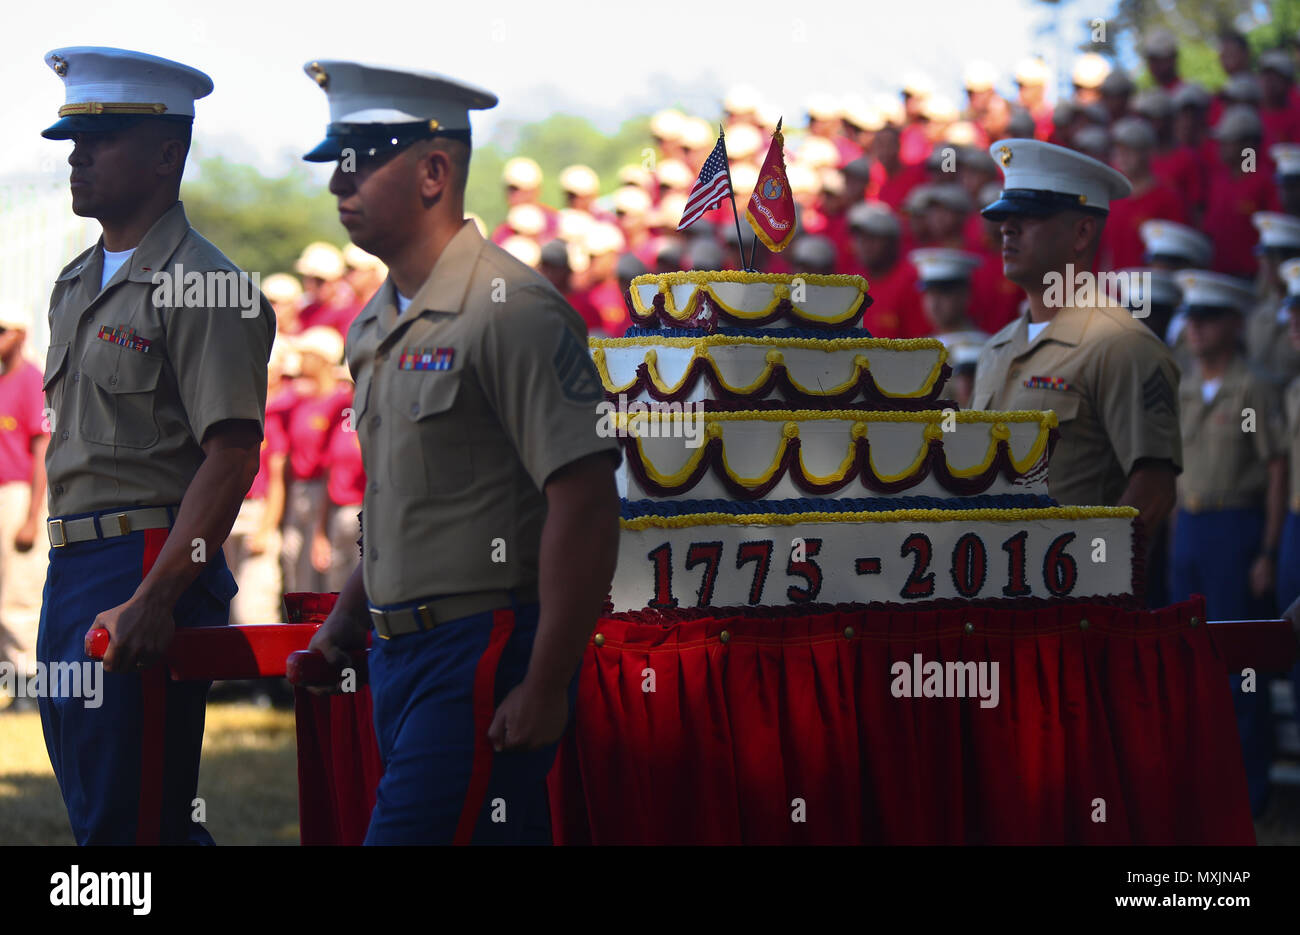 U.S. Marines assigned to Headquarters Battalion, Marine Corps Base Hawaii (MCBH), delivers the birthday cake during the annual Birthday Uniform Pageant at Dewey Square aboard MCBH, Nov. 9, 2016. (U.S. Marine Corps Photo by Cpl. Aaron S. Patterson) - Stock Image